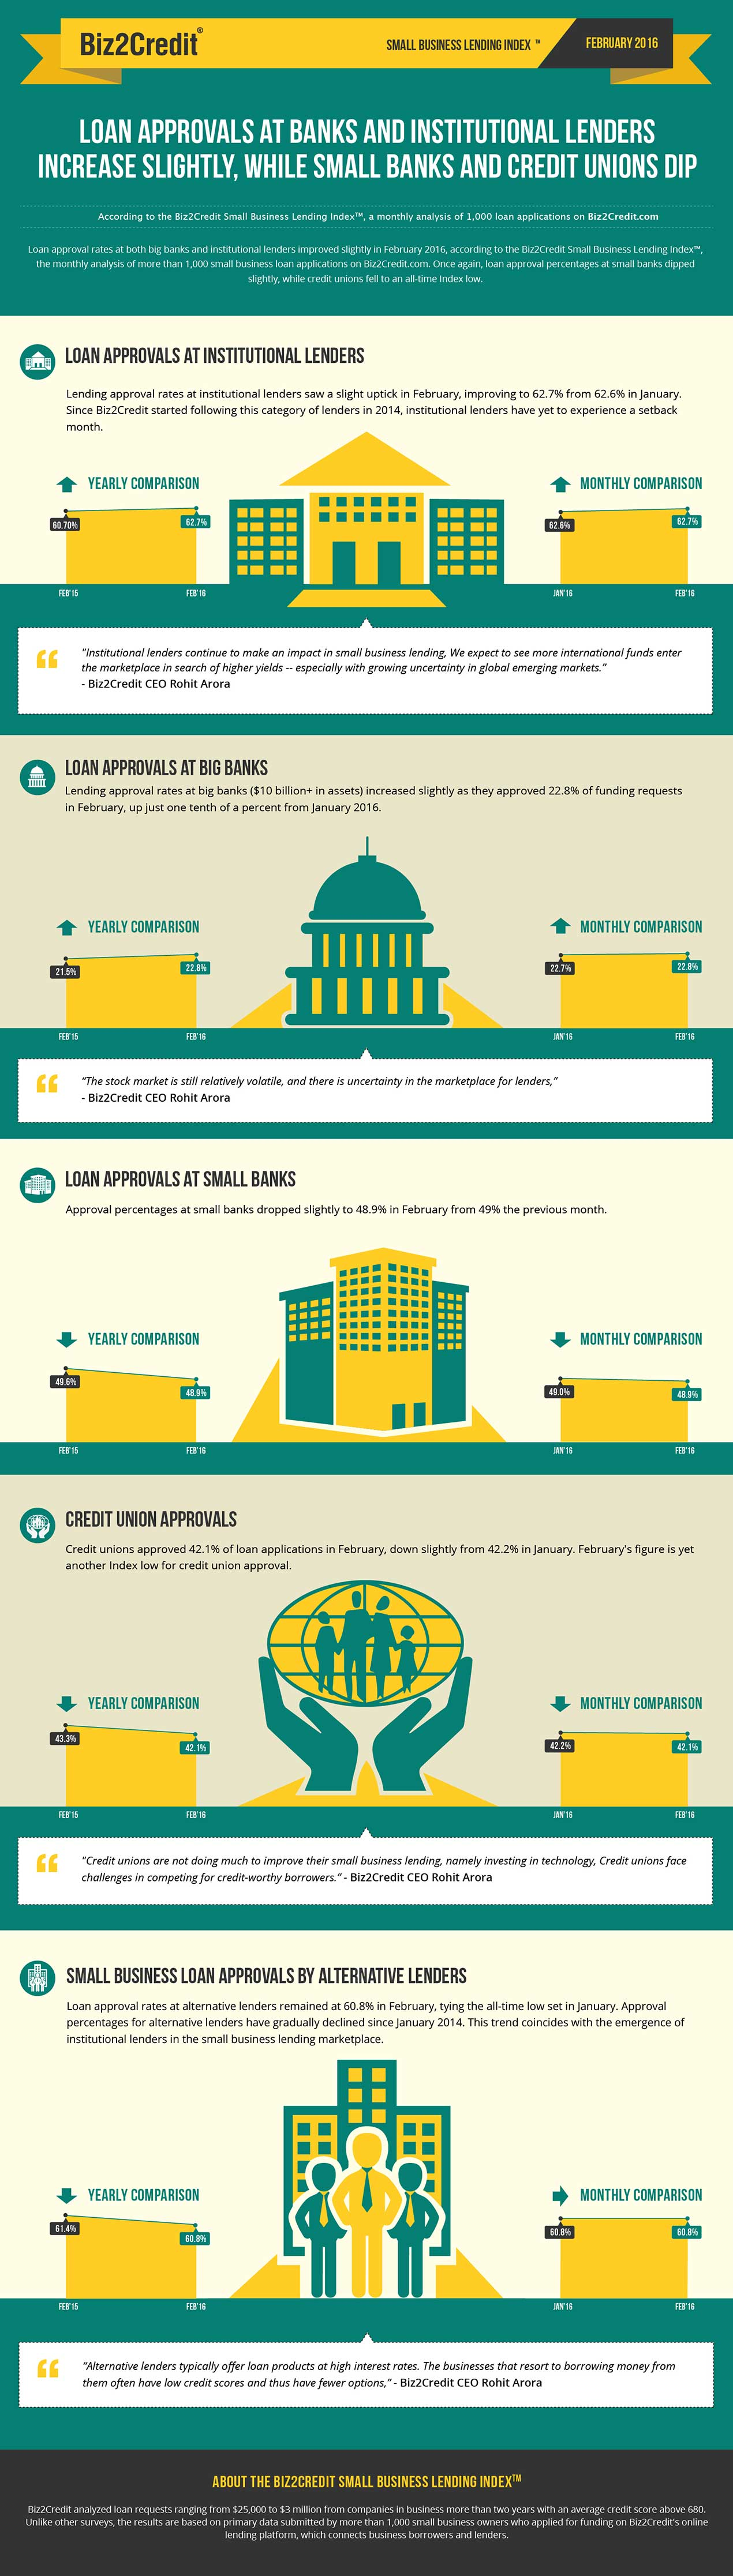 feb16 Lending Index Infographic